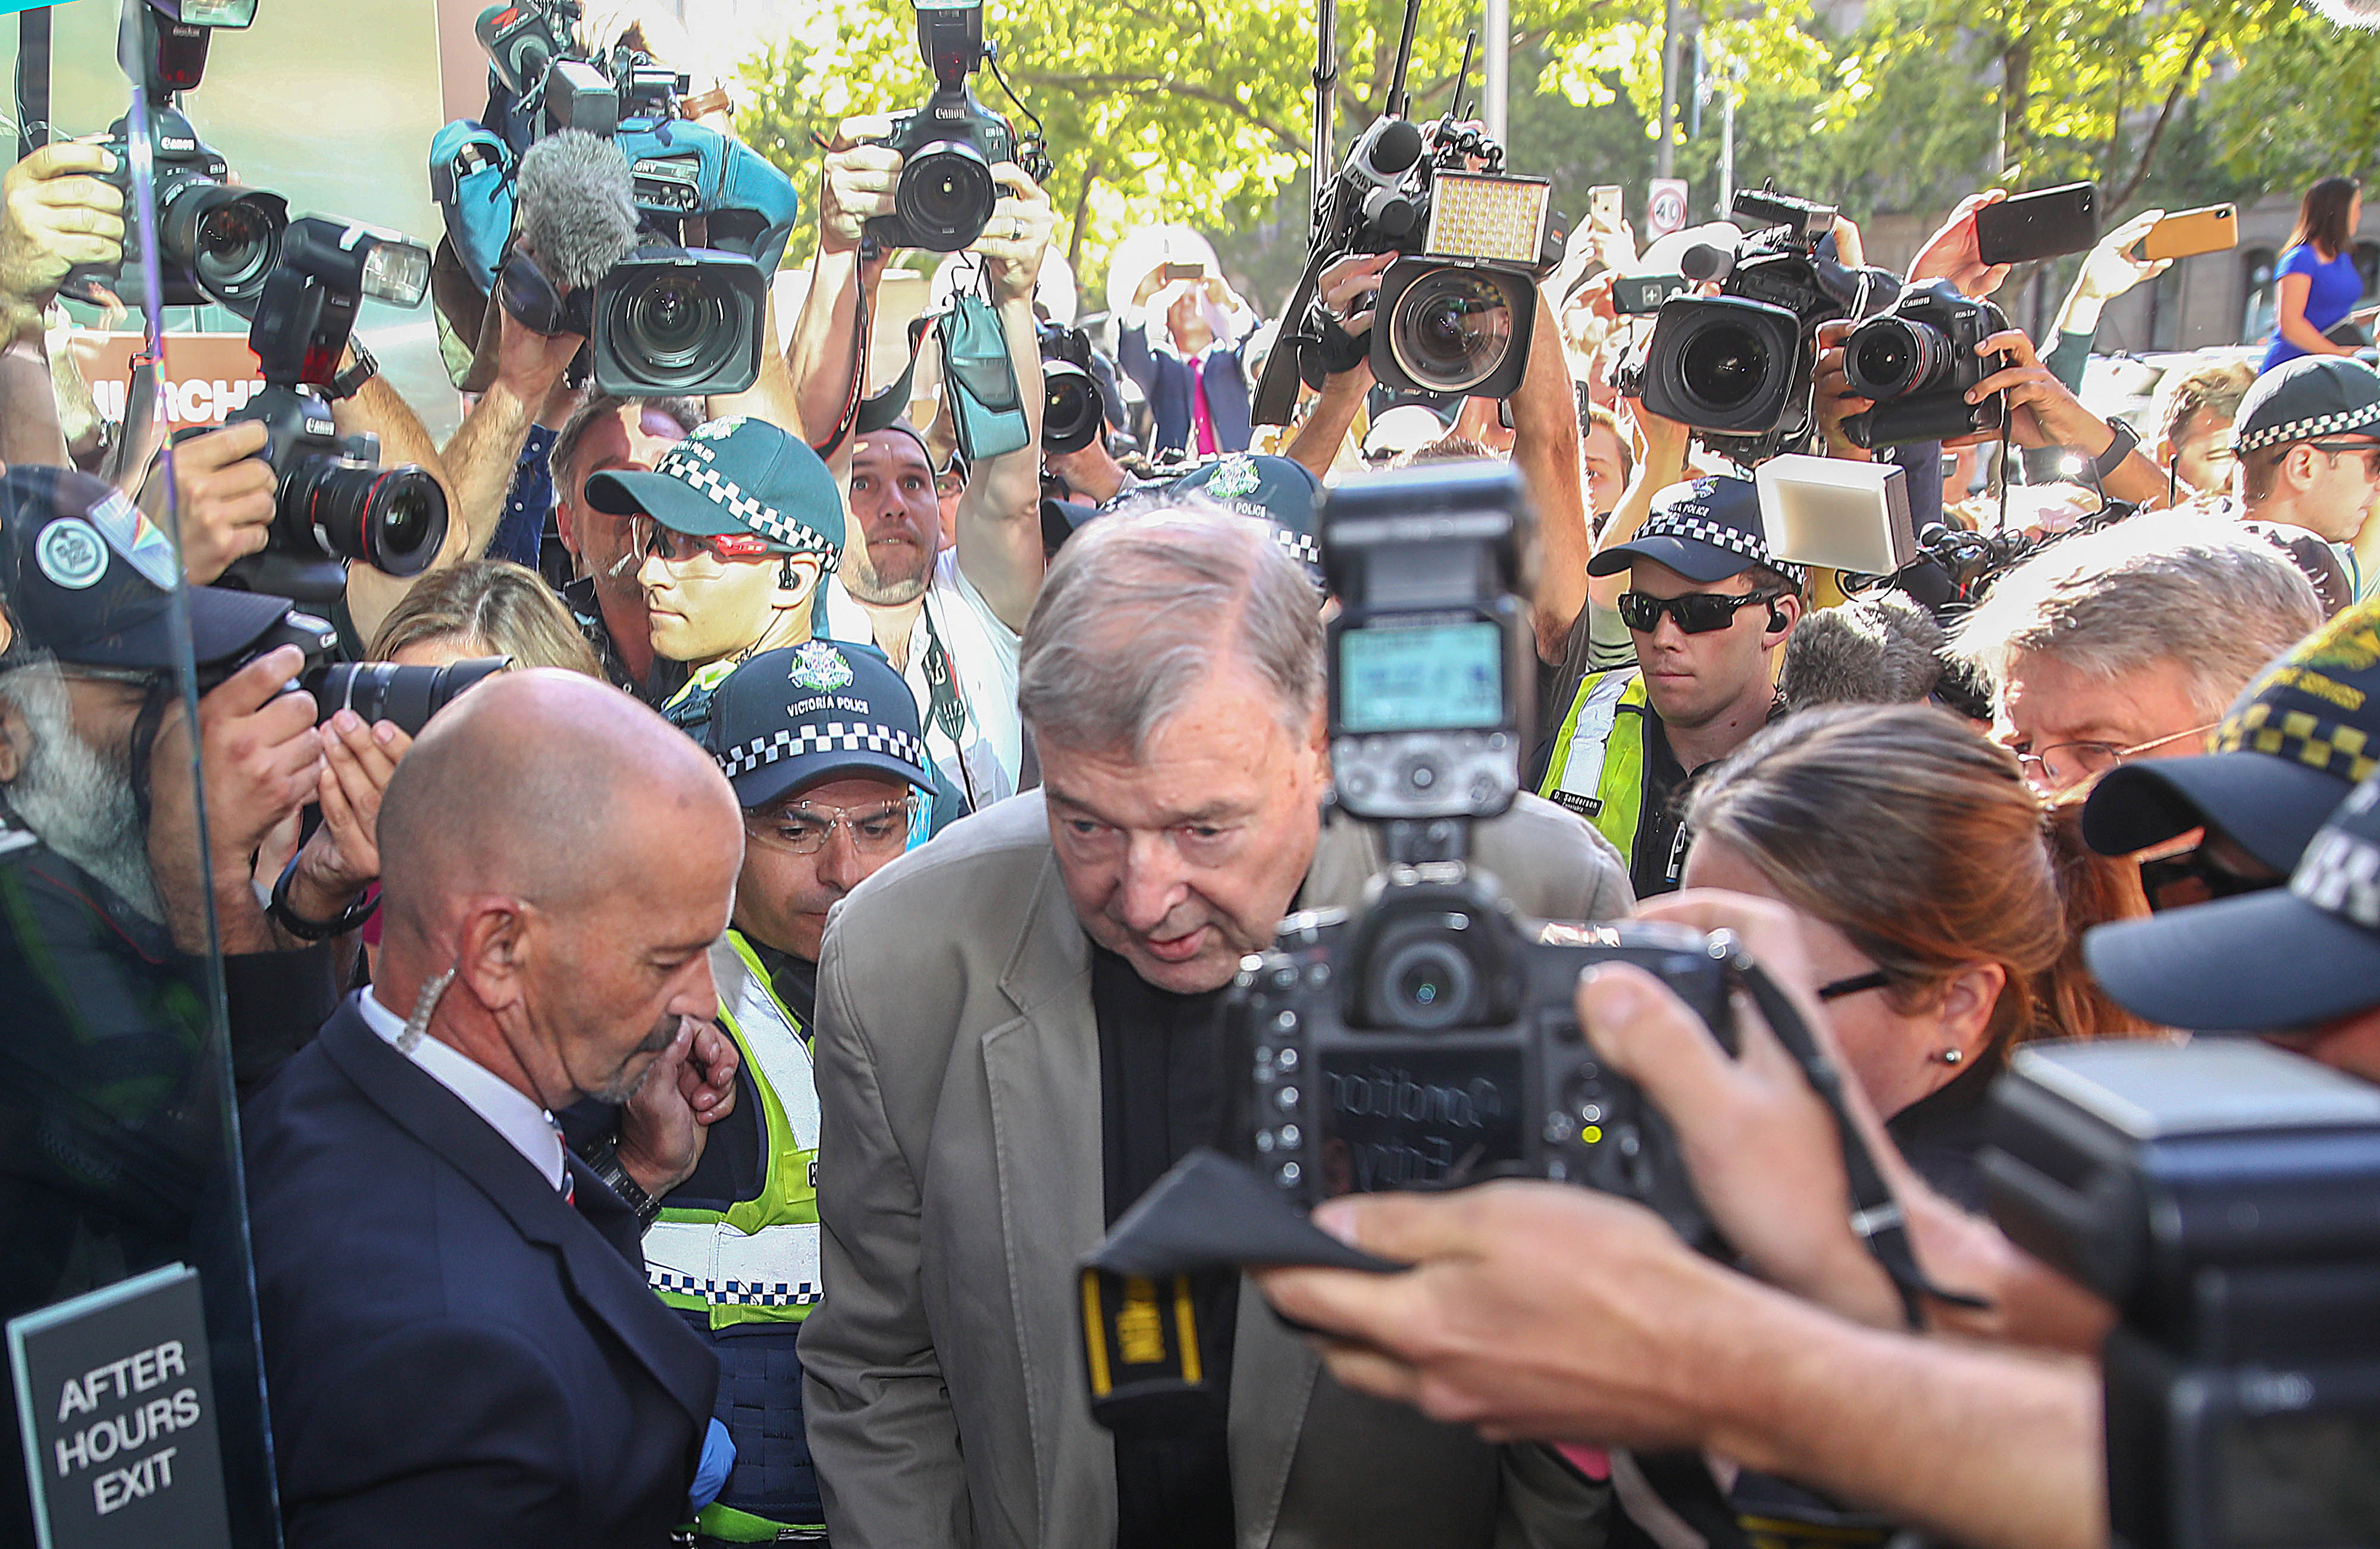 George Pell arrives at Melbourne County Court on February 27, 2019 in Melbourne, Australia. (Photo by Scott Barbour/Getty Images)